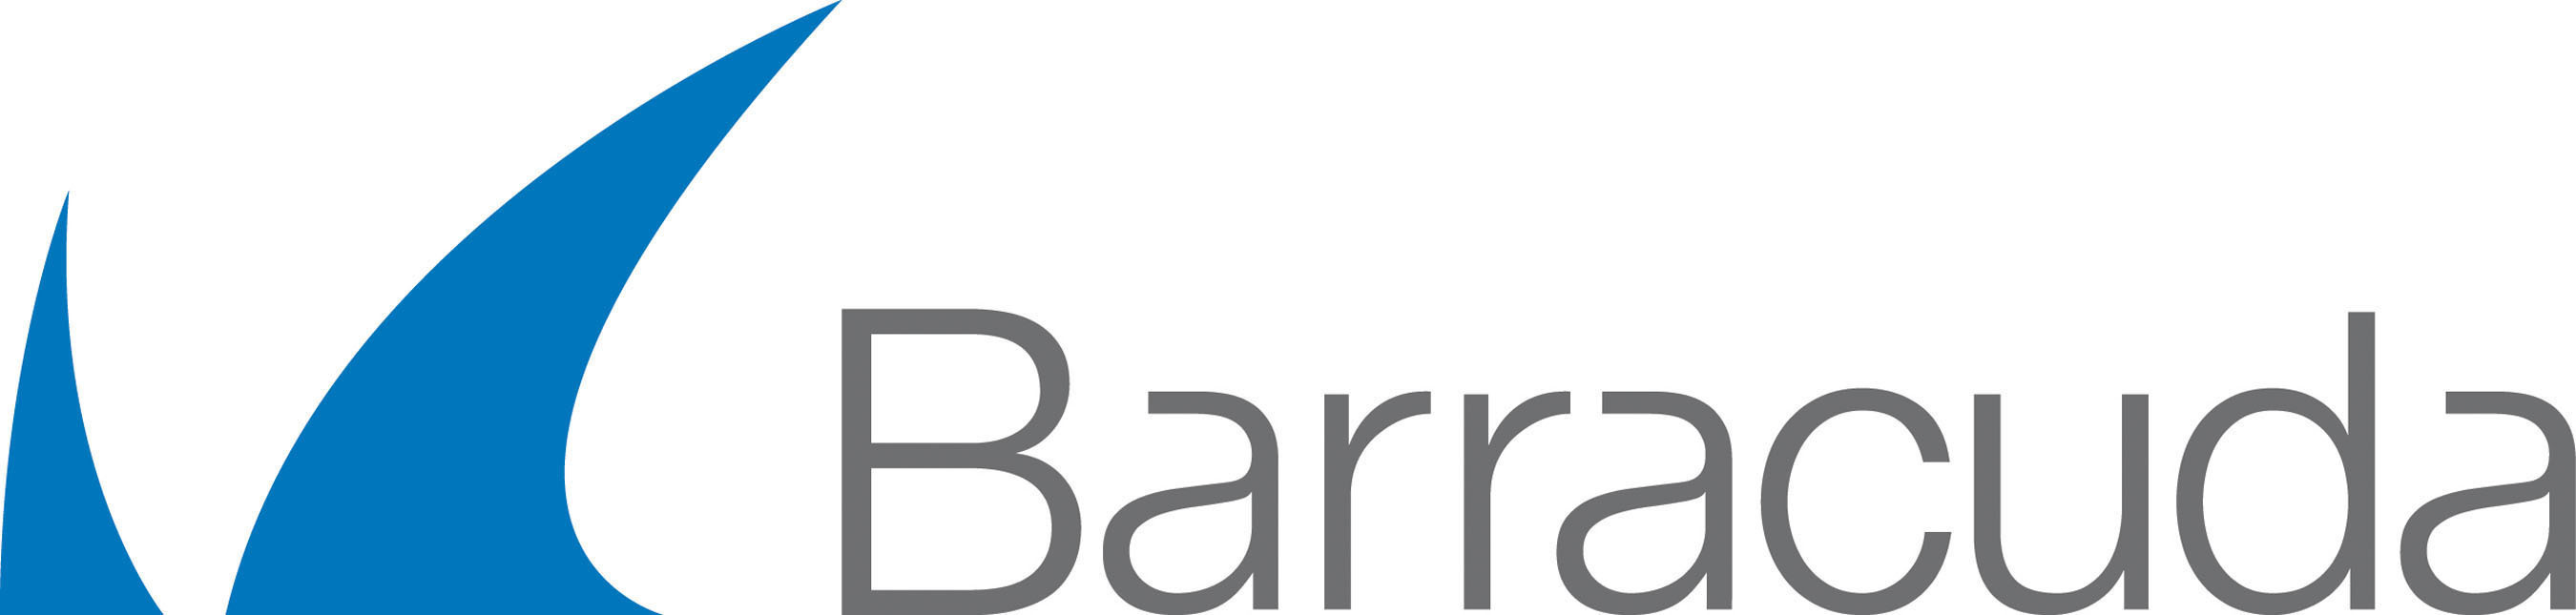 Barracuda Logo.